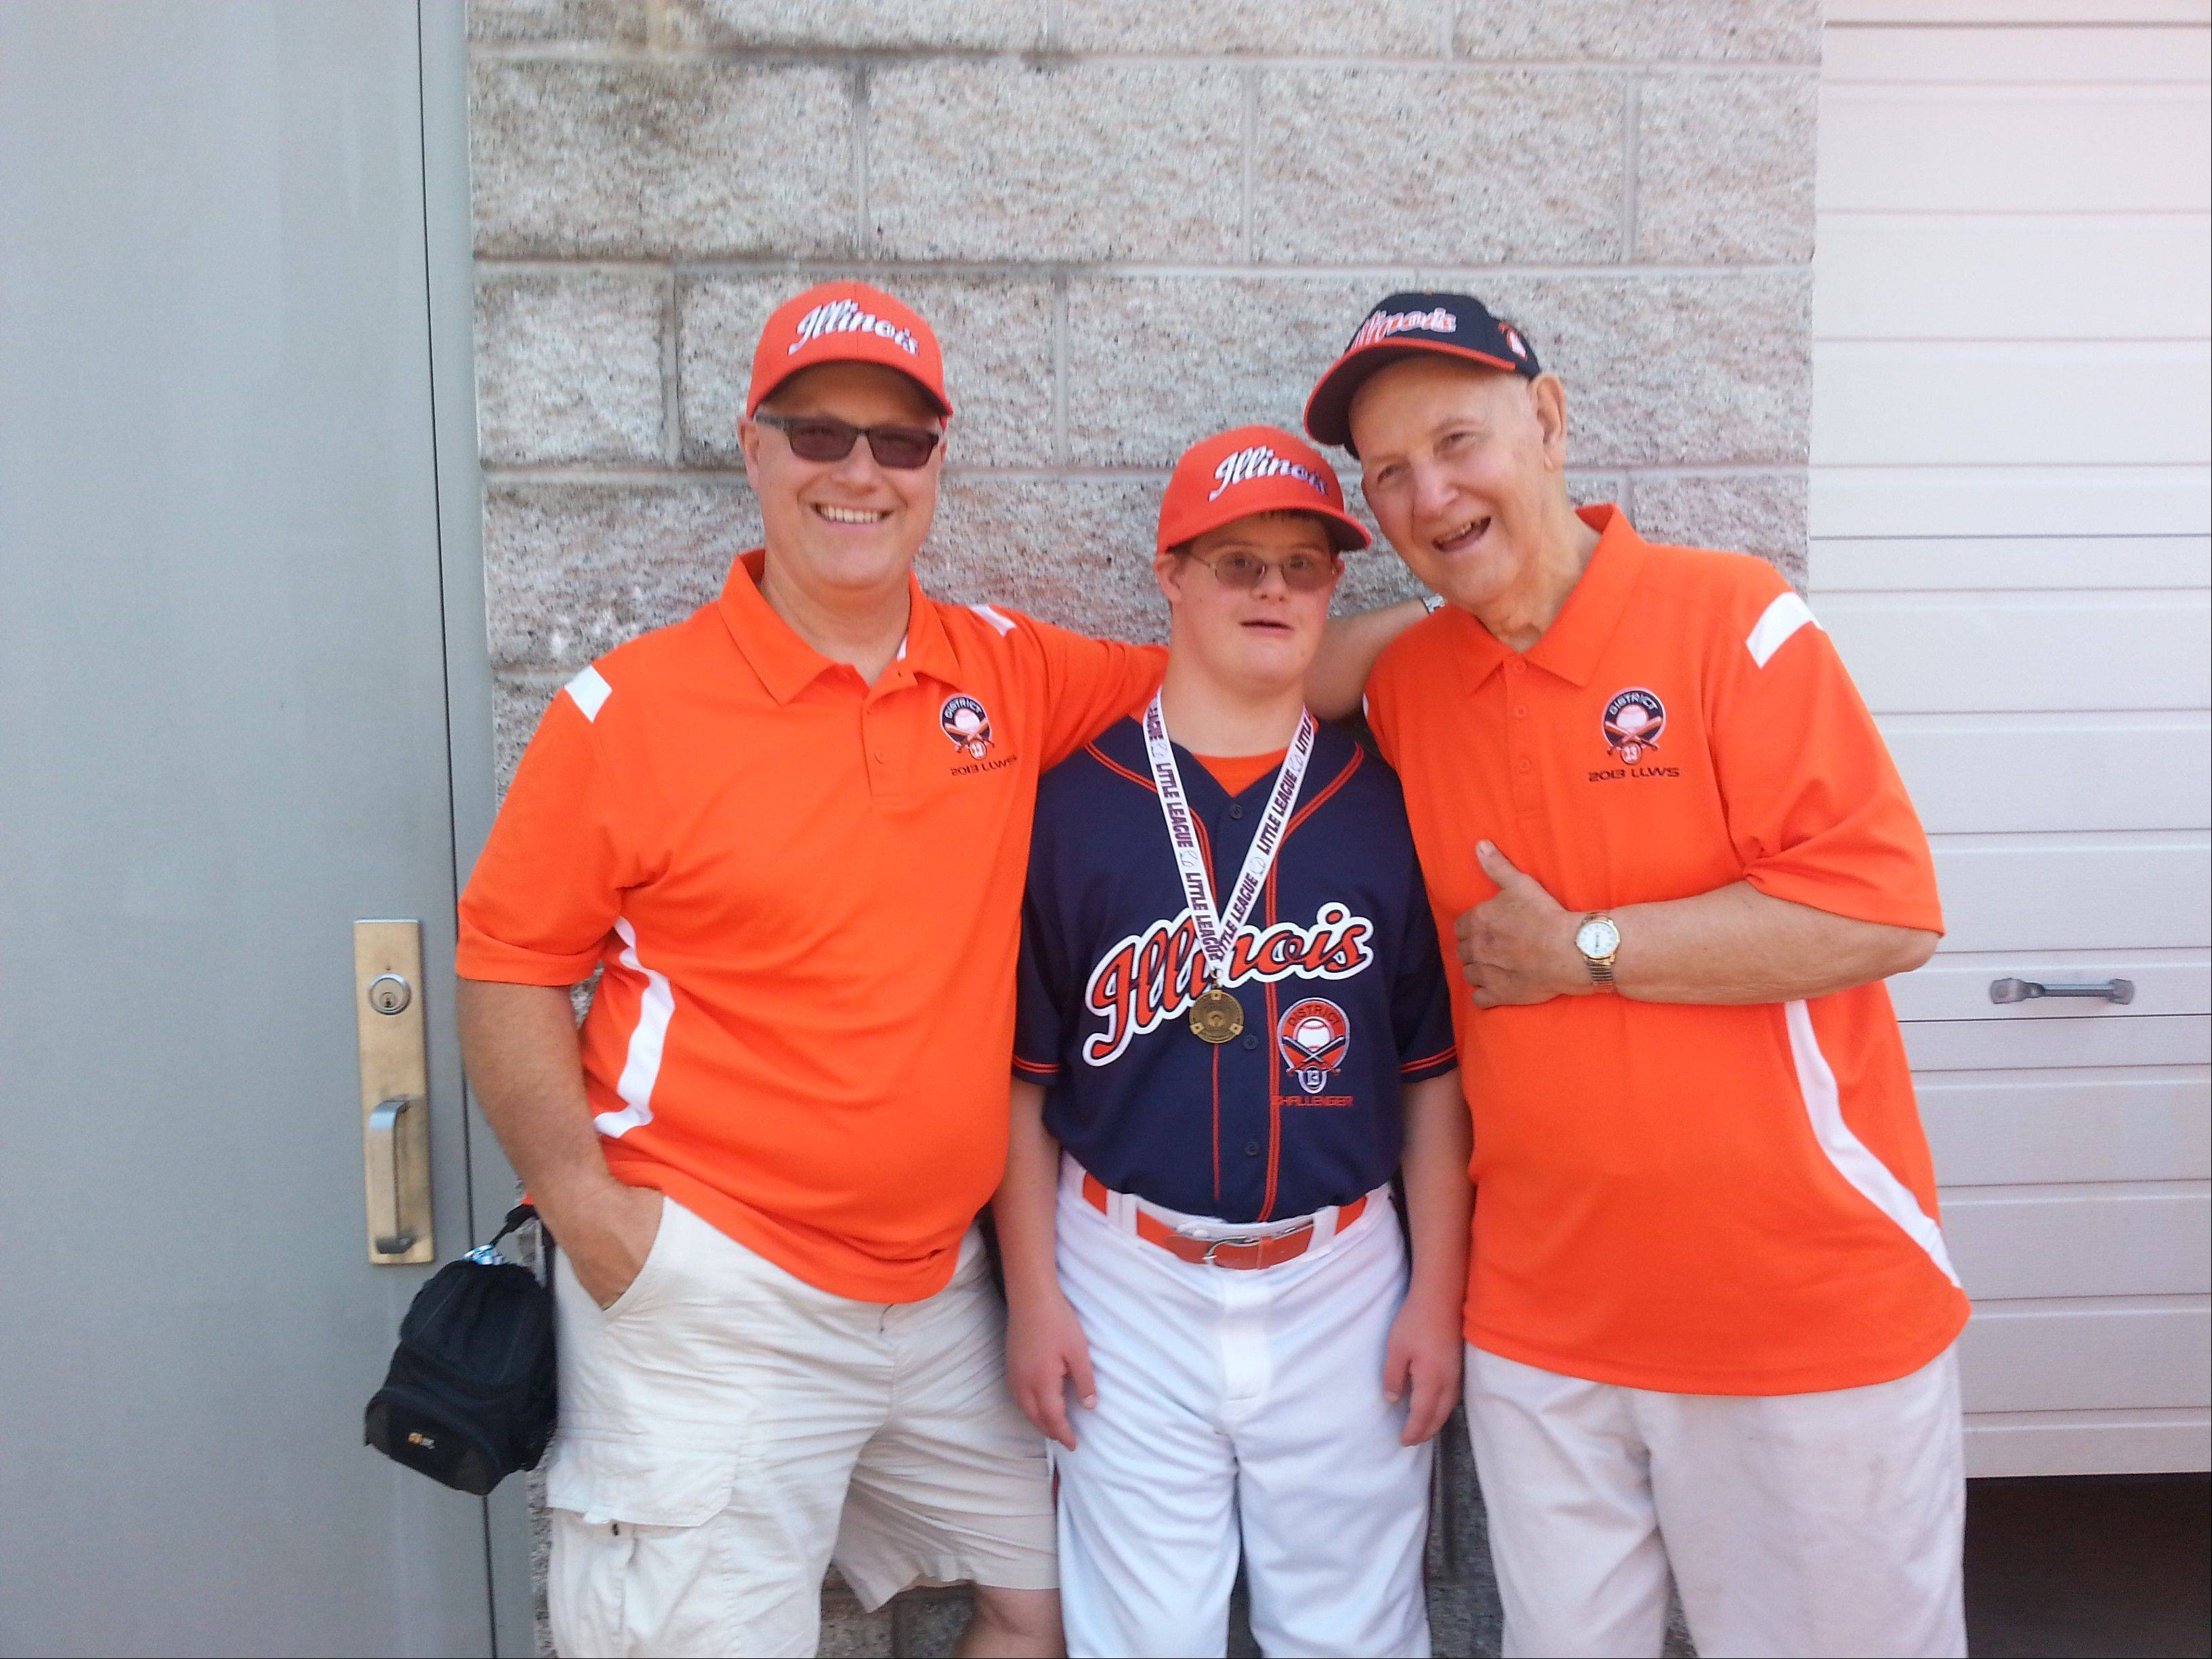 St. Charles family keeps Little League world series tradition